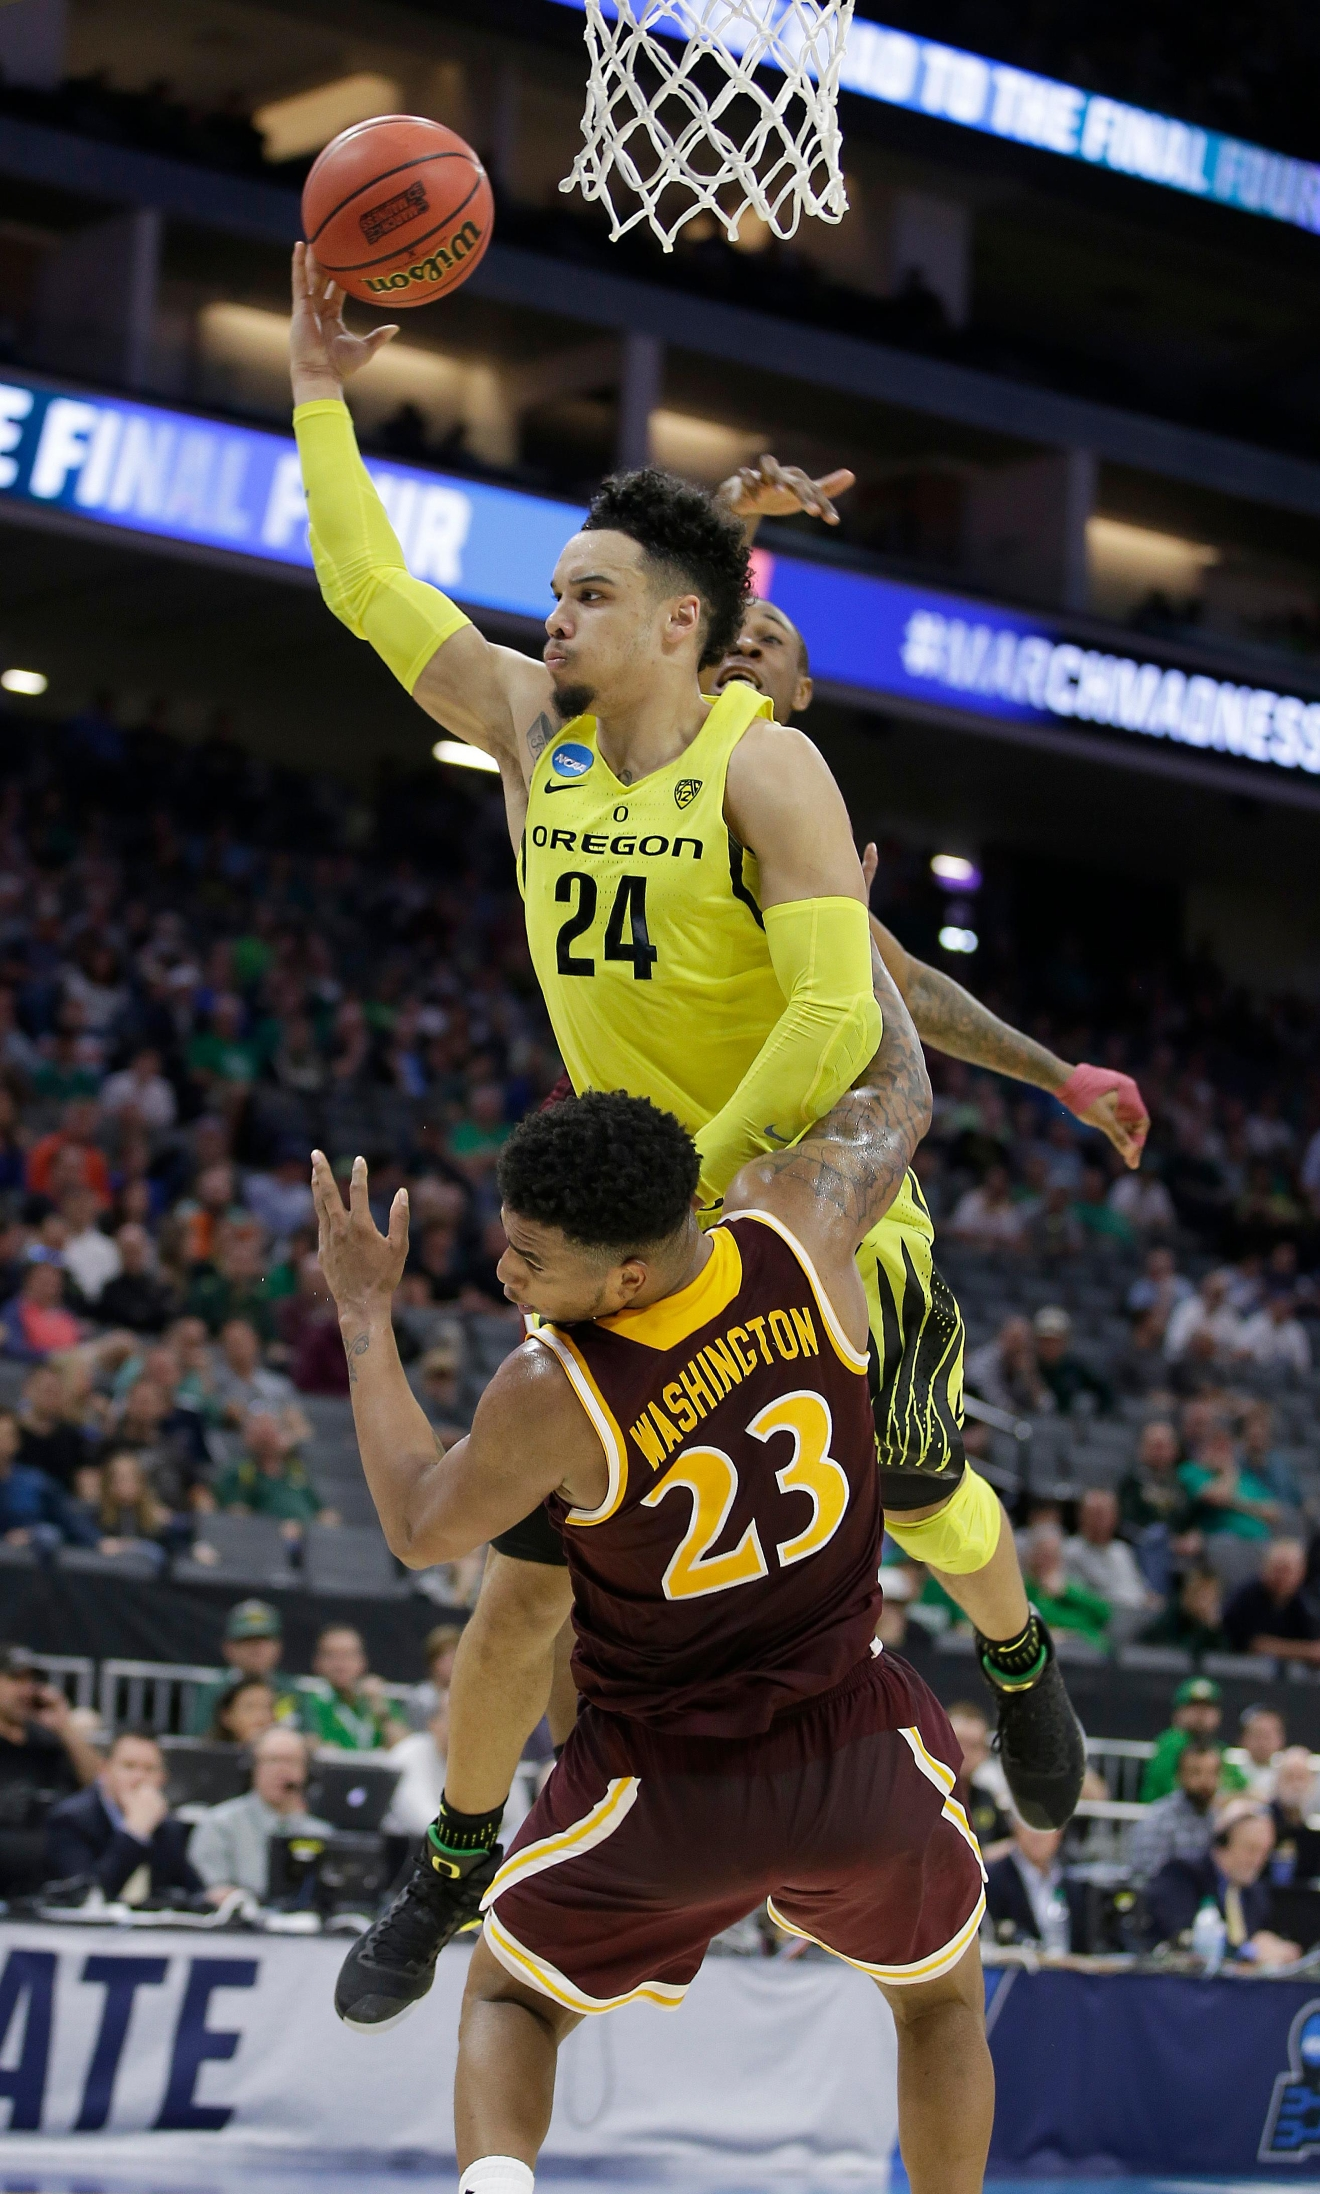 Oregon forward Dillon Brooks, center, crashes into Iona forward Jordan Washington as he goes to the basket during the first half of a first-round game in the men's NCAA college basketball tournament Sacramento, Calif. Friday, March 17, 2017. (AP Photo/Rich Pedroncelli)